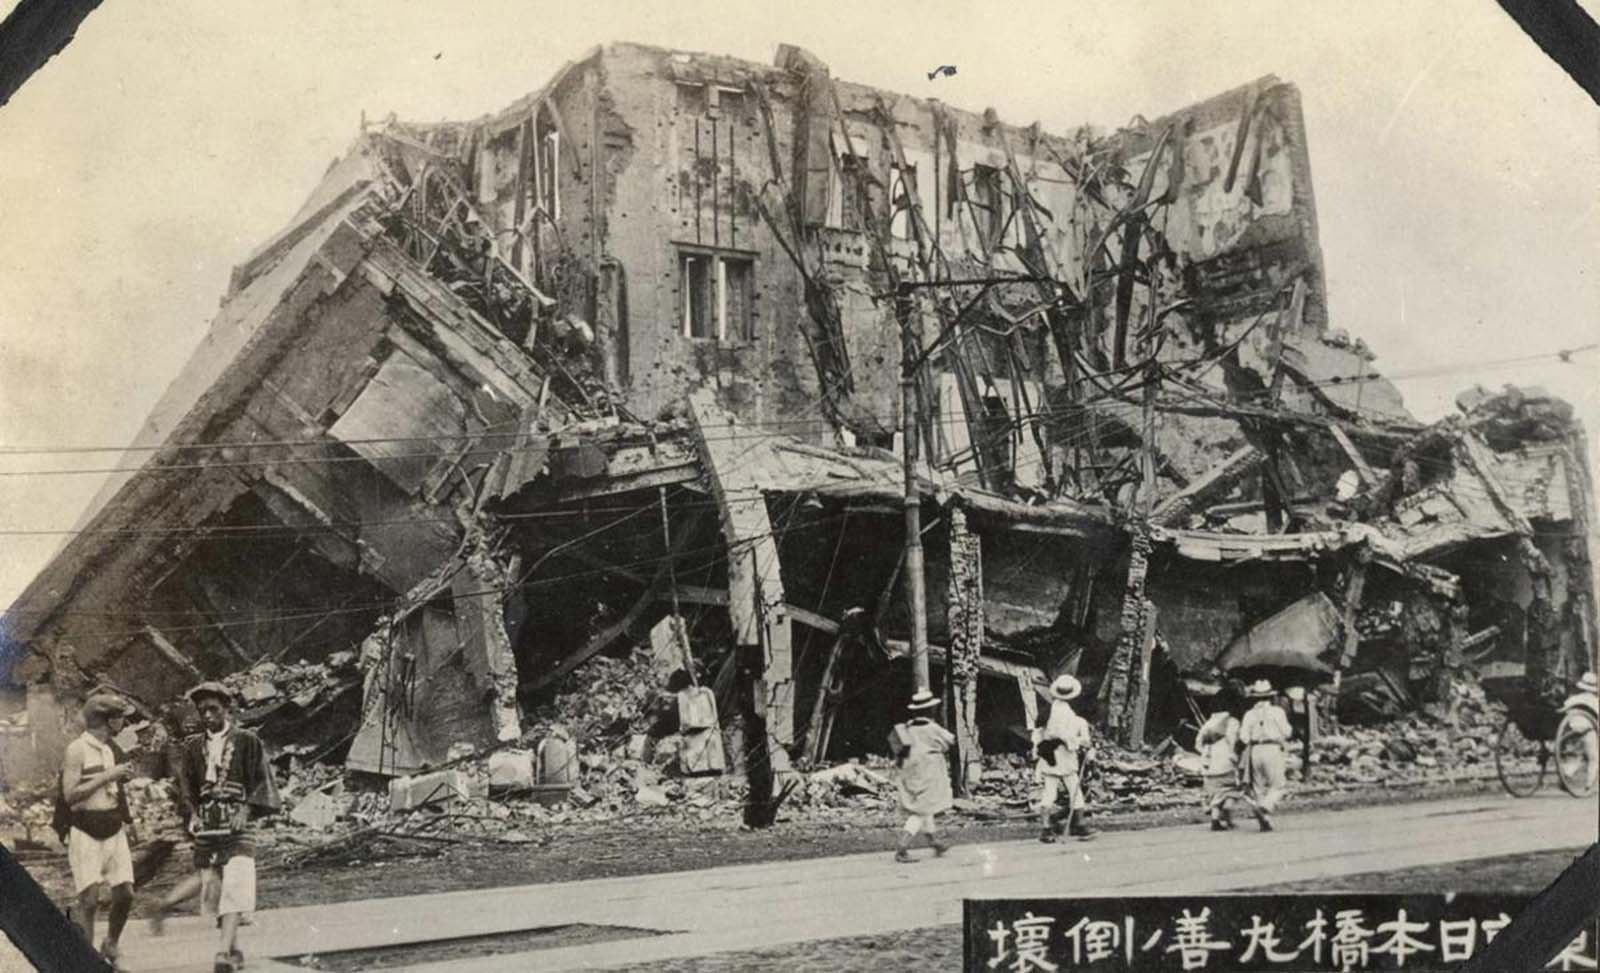 The remains of the famous Maruzen bookstore located in Nihombashi district of Tokyo after fire. The Maruzen bookstores was the largest bookstore and main provider of Western and European literature in Tokyo.